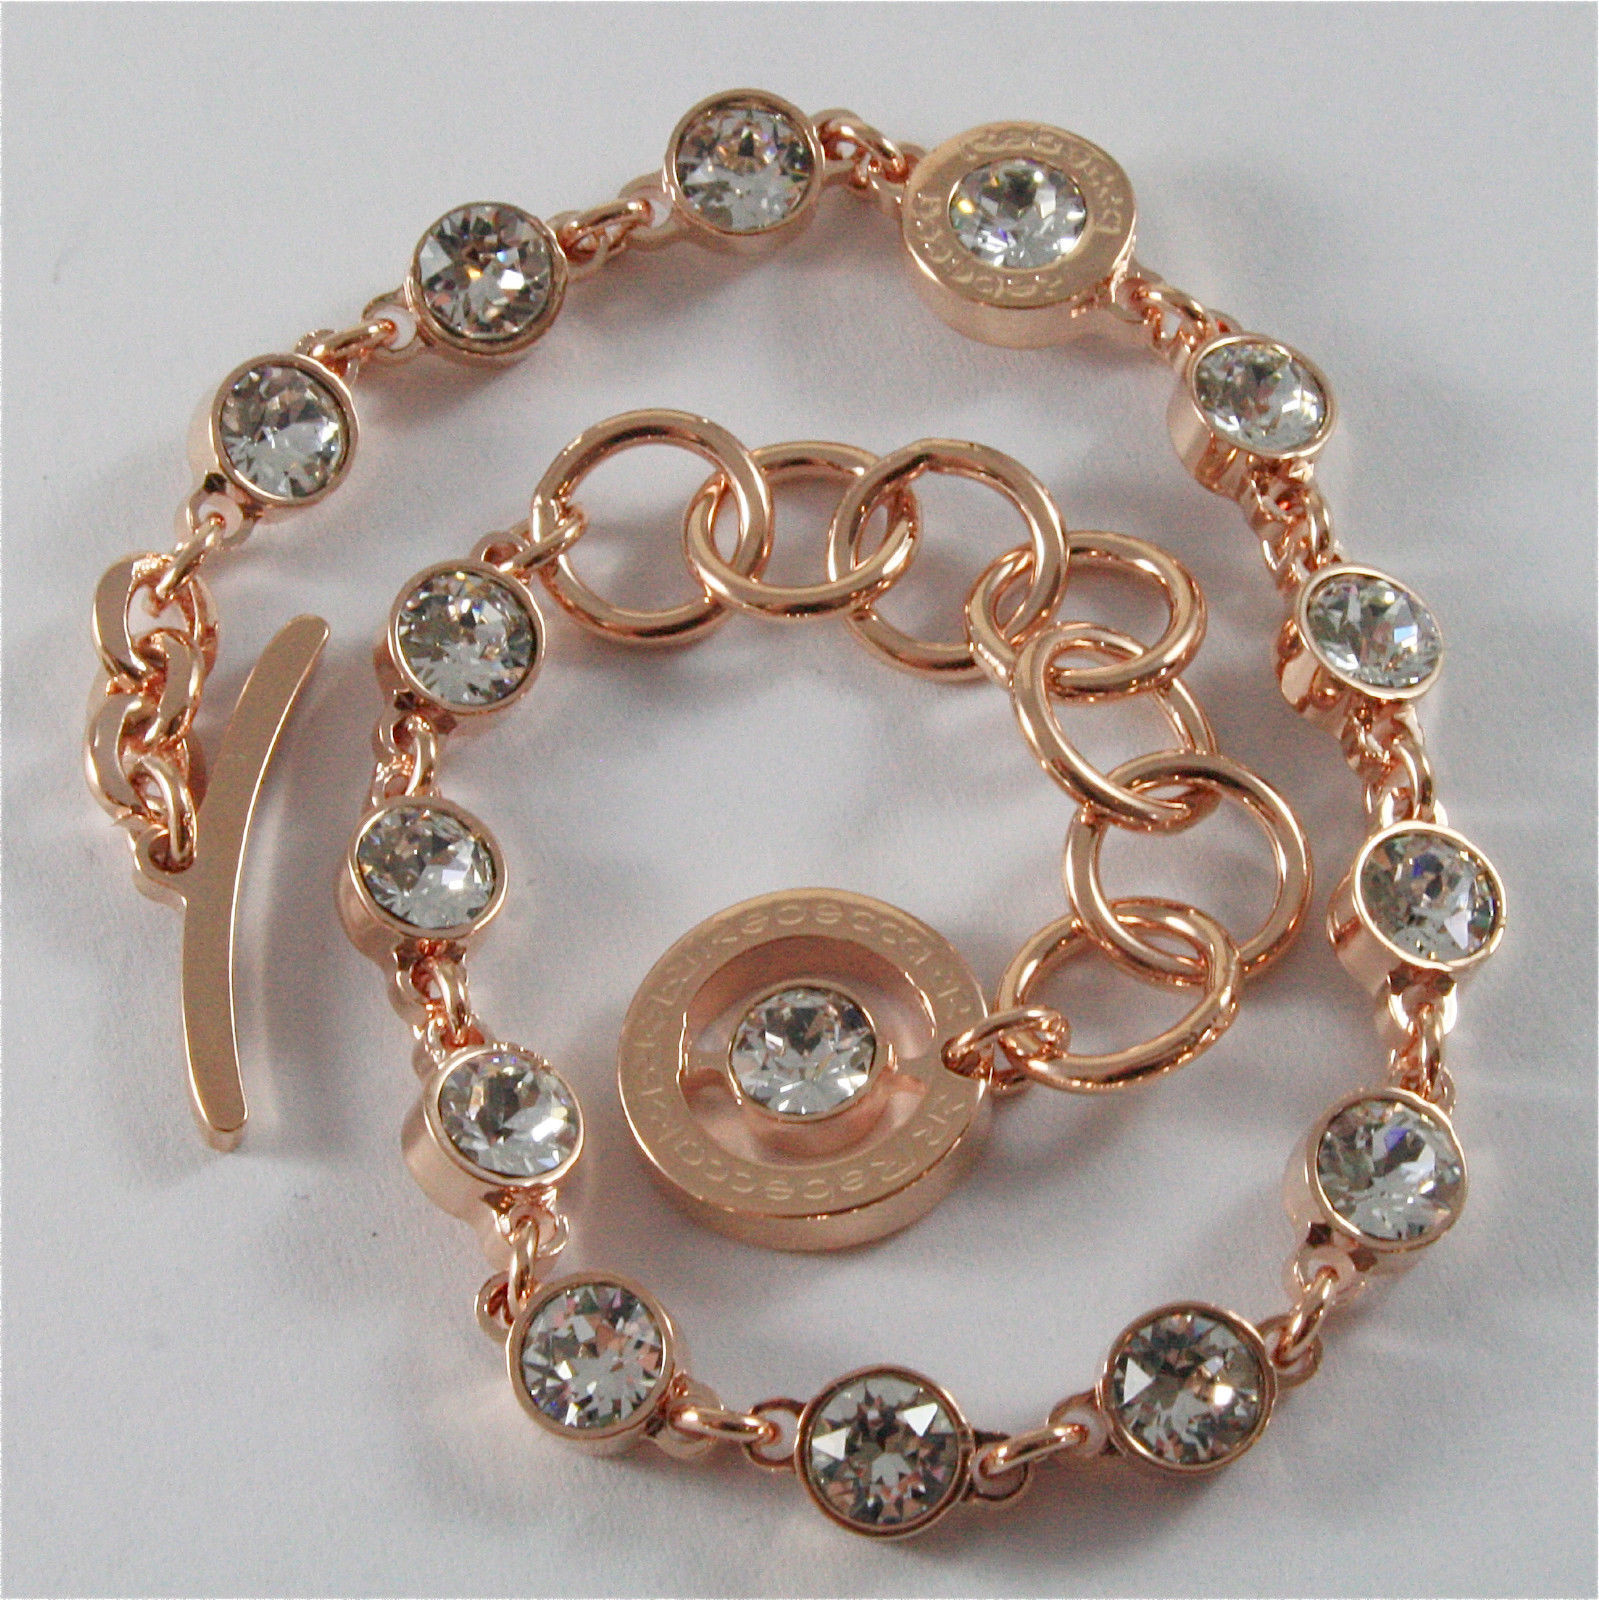 ROSE GOLD PLATED BRONZE REBECCA BRACELET PALM BEACH BPBBRB31 MADE IN ITALY 7.48